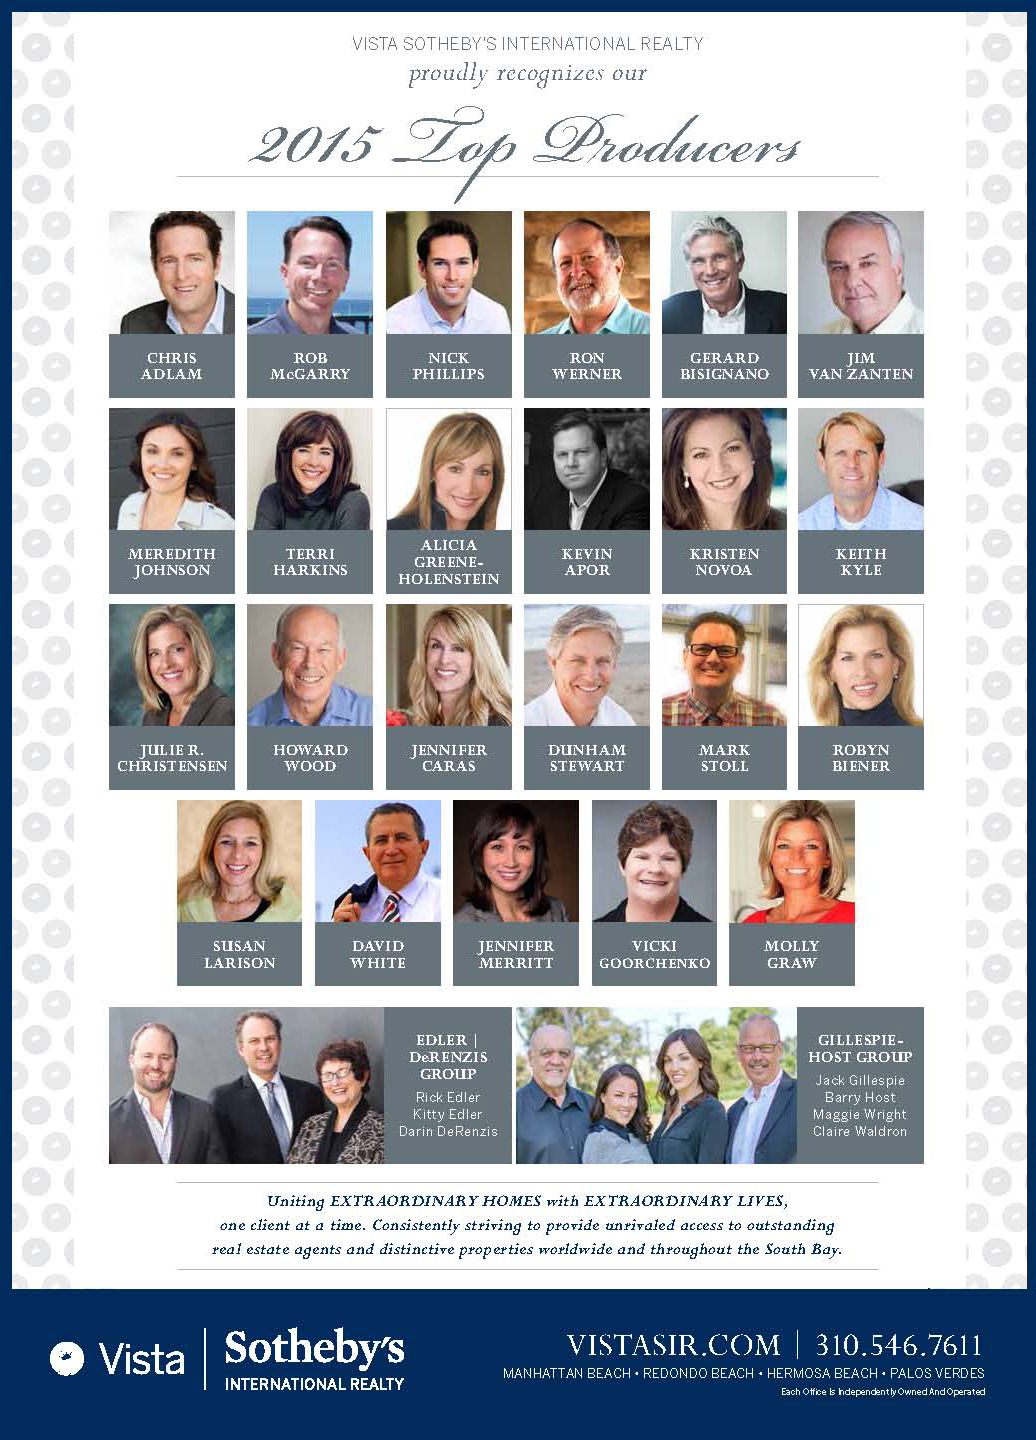 Vista Sothebys 2015 Top Producing Realtors